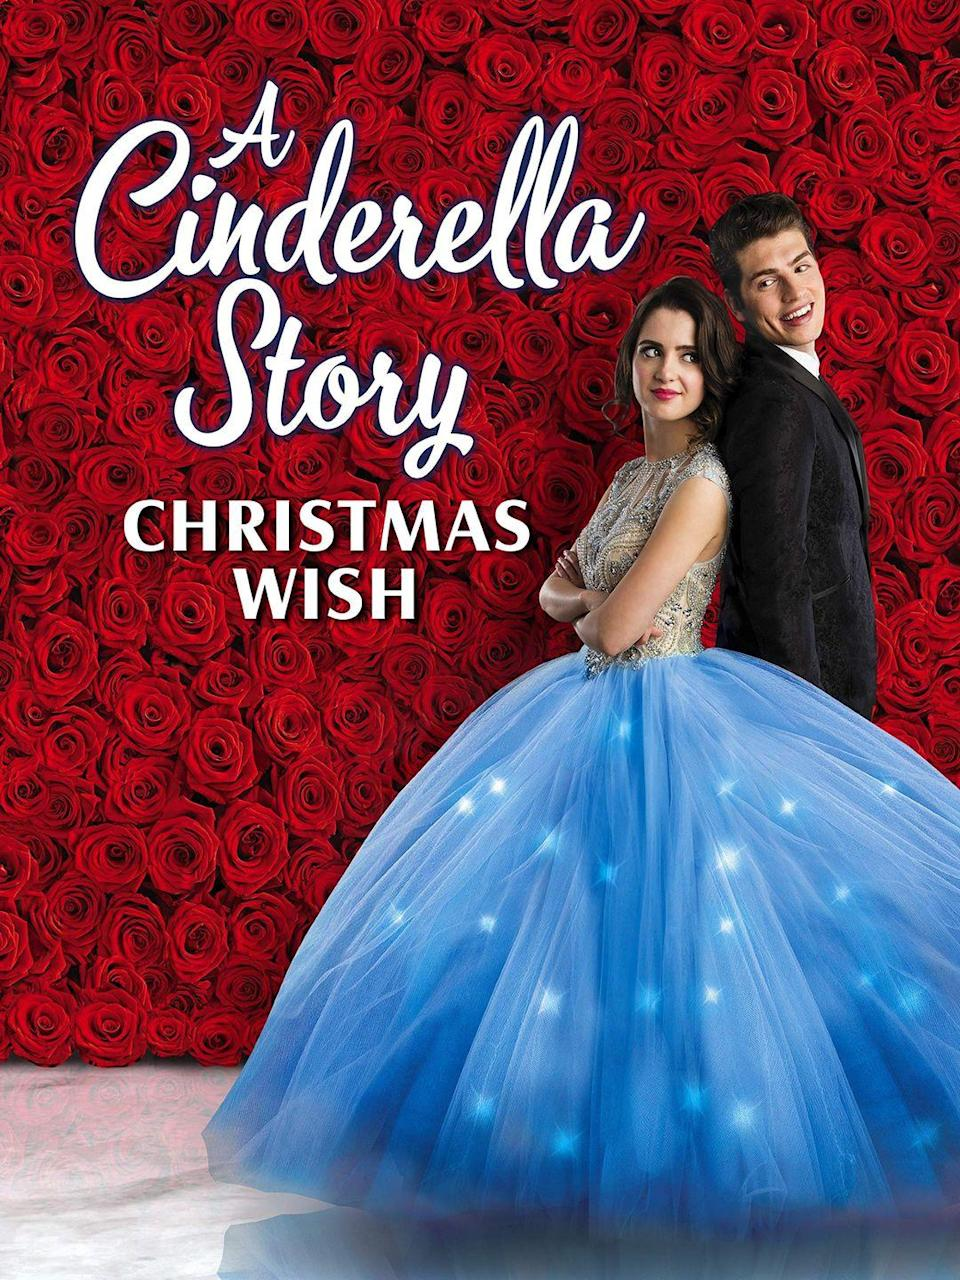 """<p>This fifth installment of <em>A Cinderella Story</em> film series follows an aspiring performer (with a wicked stepmother and stepsisters, of course) who takes a job as a singing elf at Santaland, though the job has a benefit: the guy playing Santa Claus is really cute. </p><p><a class=""""link rapid-noclick-resp"""" href=""""https://www.amazon.com/Cinderella-Story-Christmas-Wish/dp/B07WSG37KH?tag=syn-yahoo-20&ascsubtag=%5Bartid%7C10070.g.29702471%5Bsrc%7Cyahoo-us"""" rel=""""nofollow noopener"""" target=""""_blank"""" data-ylk=""""slk:STREAM NOW"""">STREAM NOW</a></p>"""